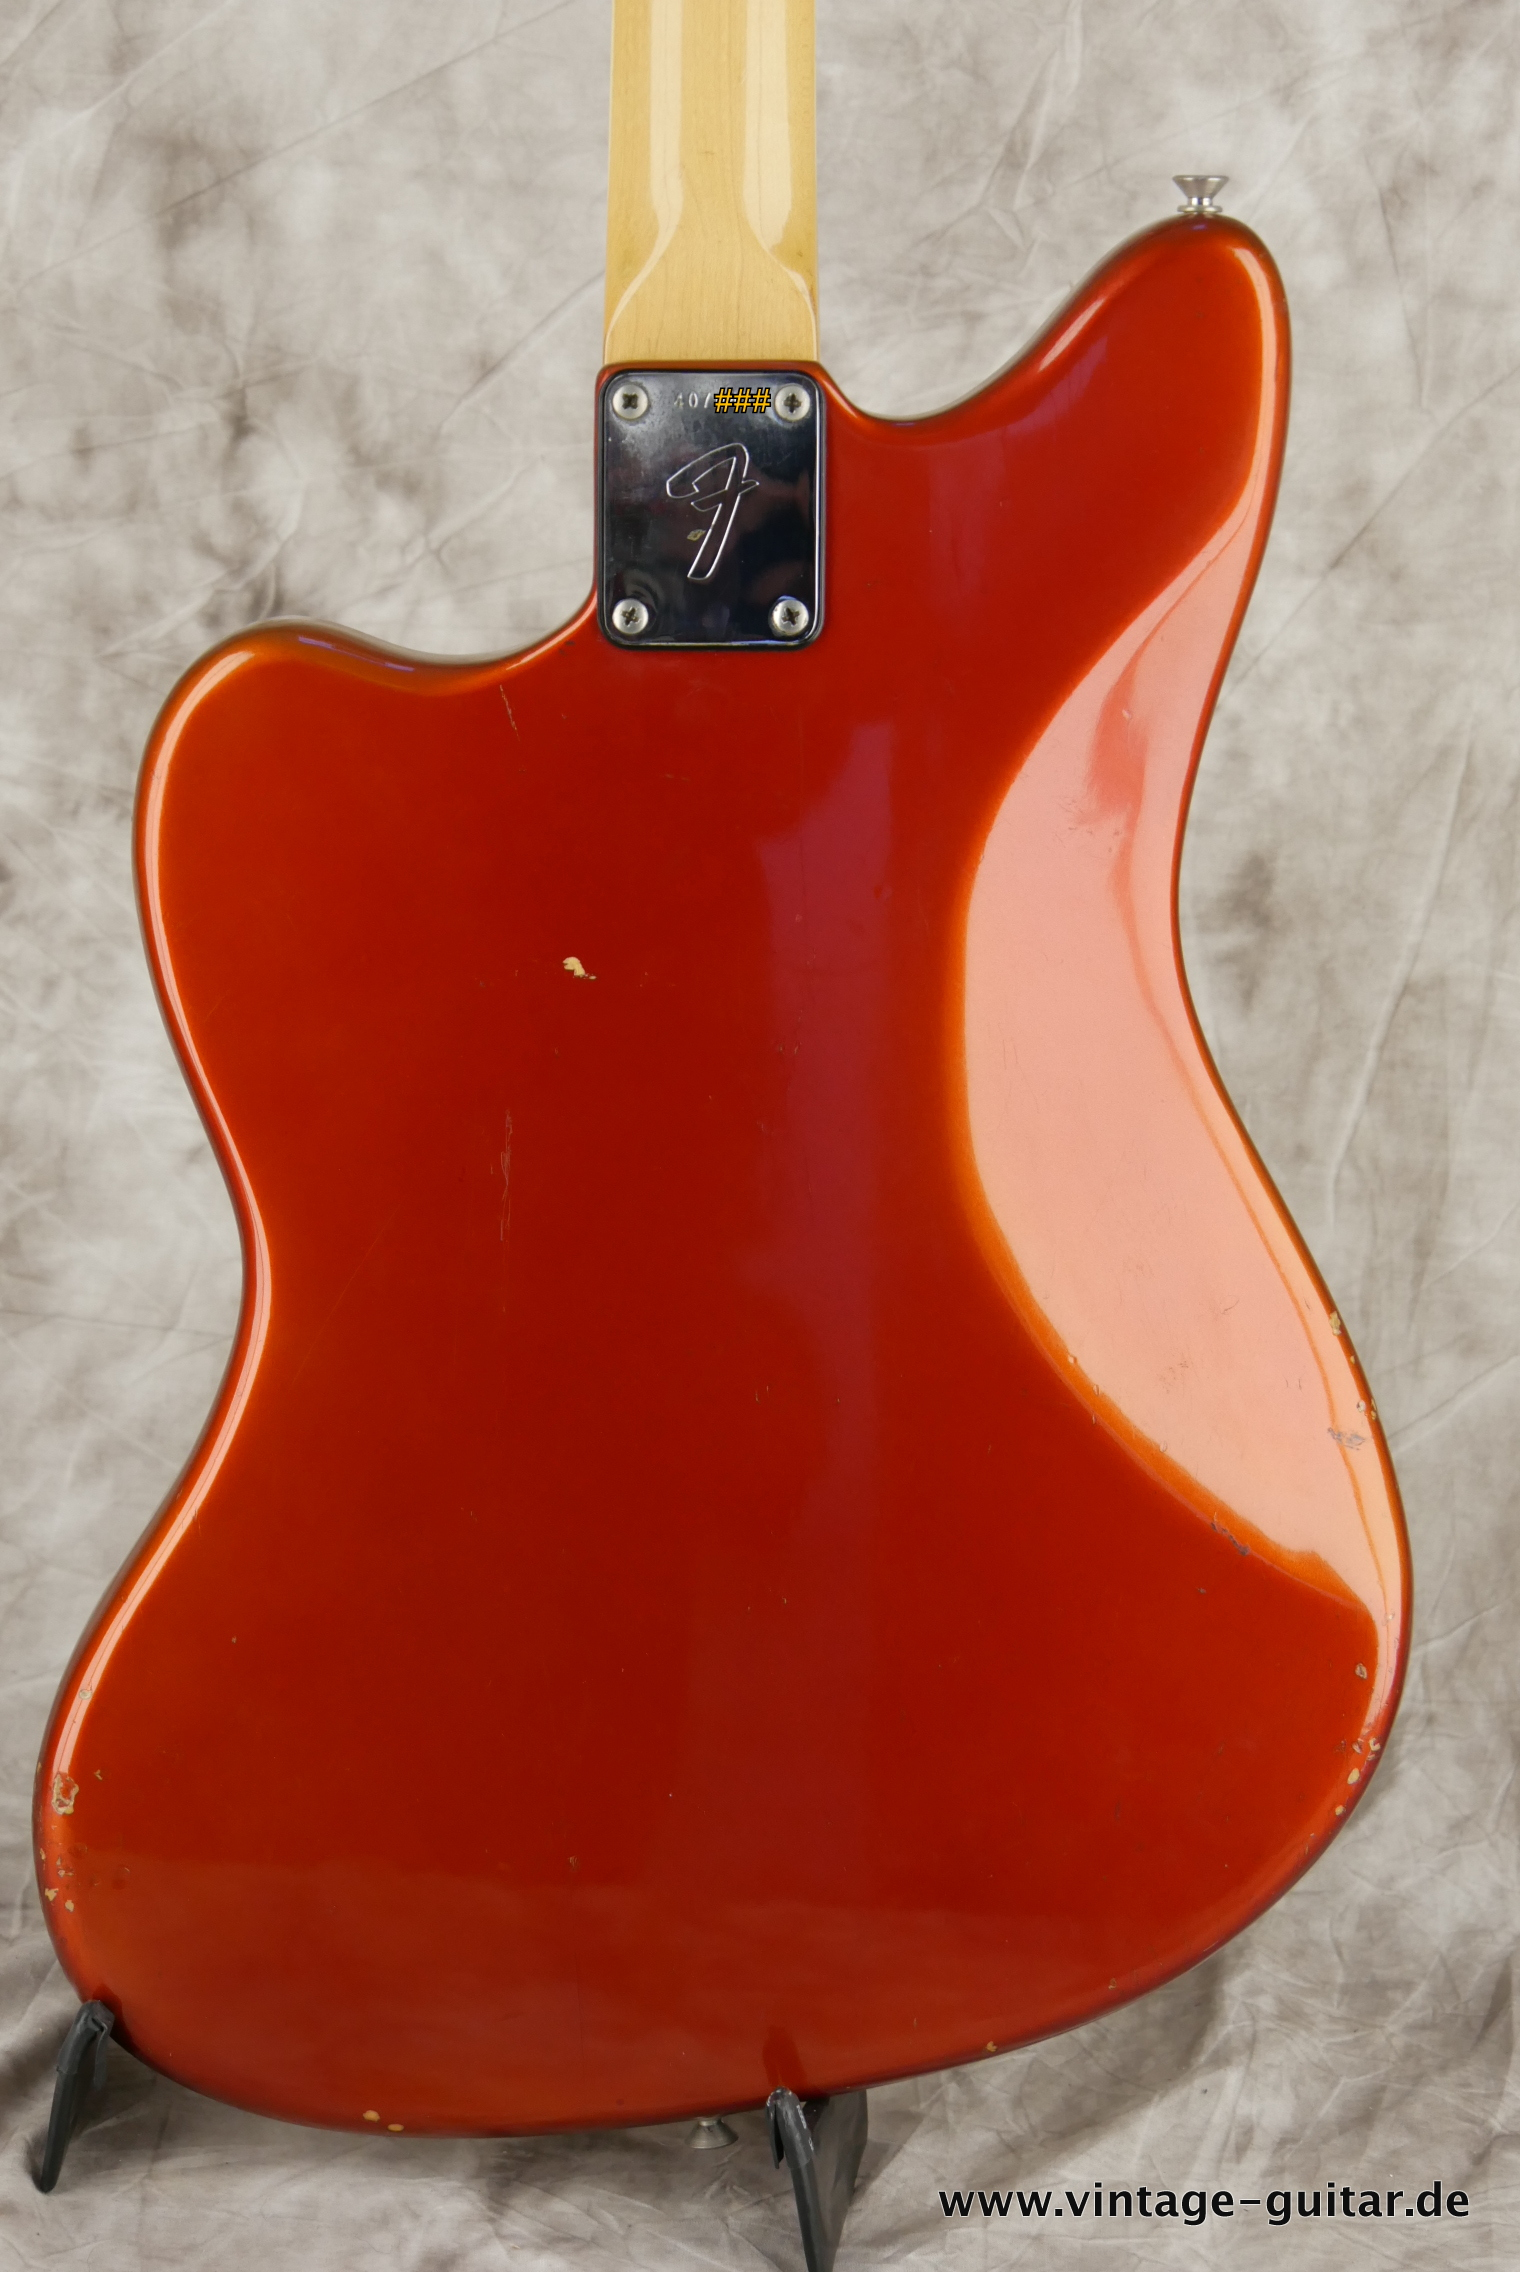 img/vintage/3230/Fender-Jazzmaster-1973-candy-apple-red-005.JPG